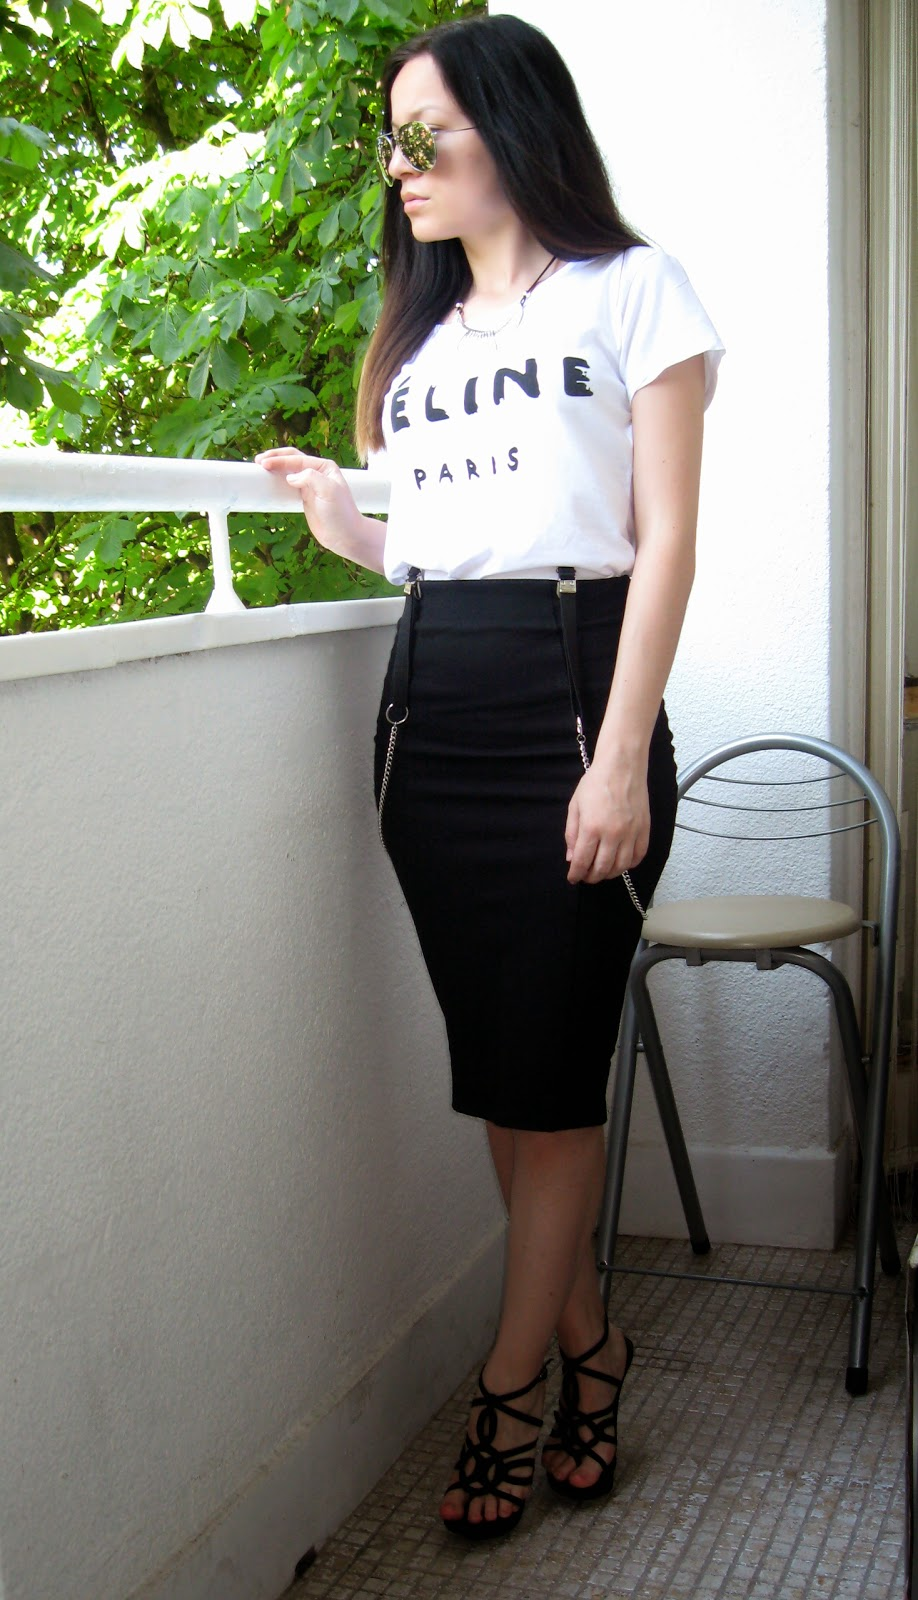 pull and bear black pencil skirt, black heel sandals, celine t shirt, aviator sunglasses, black suspenders, black and white